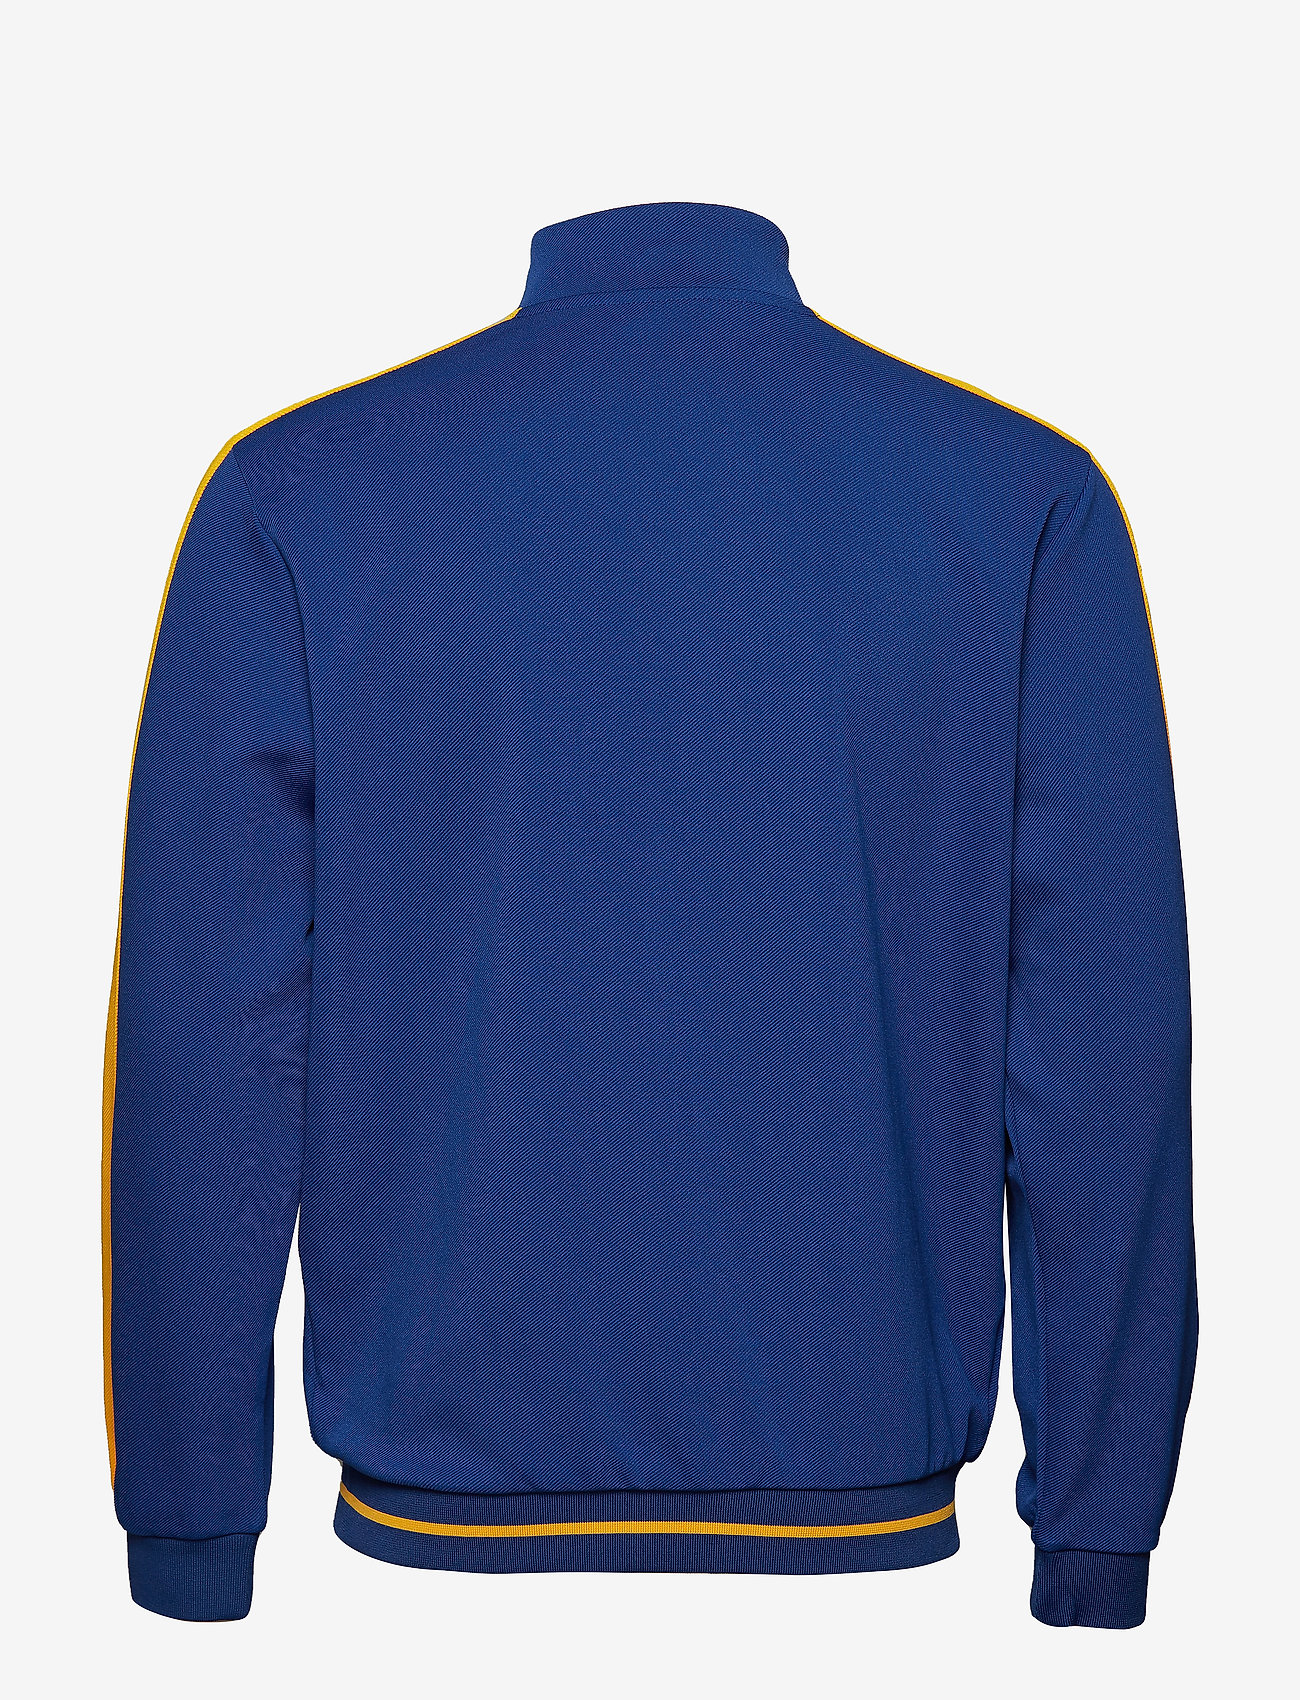 Russell Athletic - RU ANGELES-STRIPED TRCK JCKT - track jackets - mazarine blue - 1